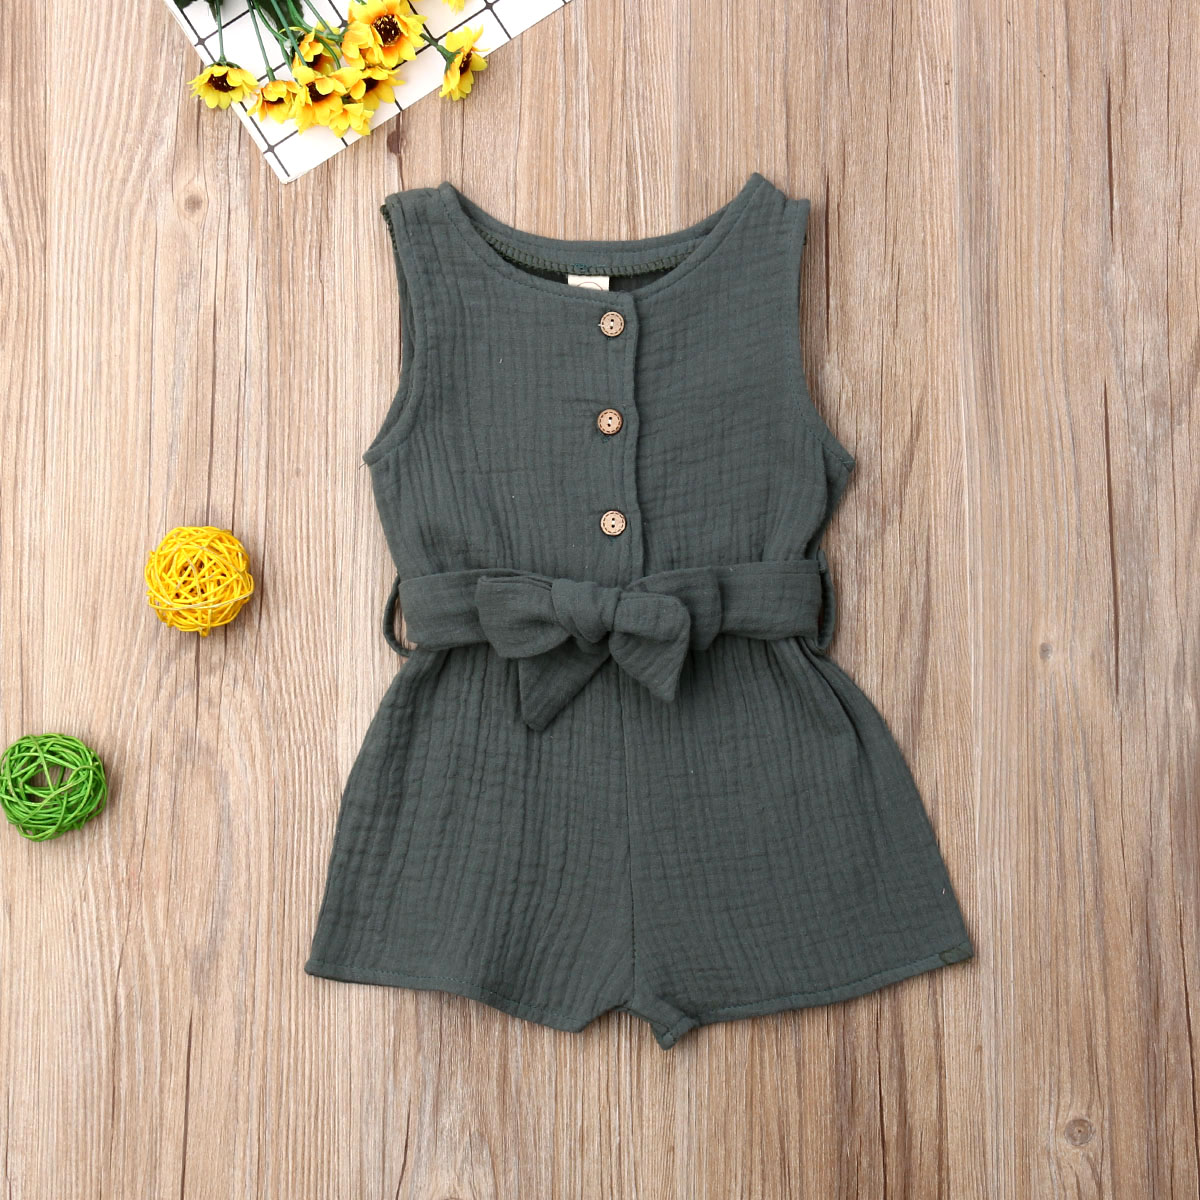 Pudcoco Summer Newborn Baby Girl Clothes Sleeveless Solid Color Cotton And Hemp Romper Jumpsuit Belt One-Piece Outfit Sunsuit